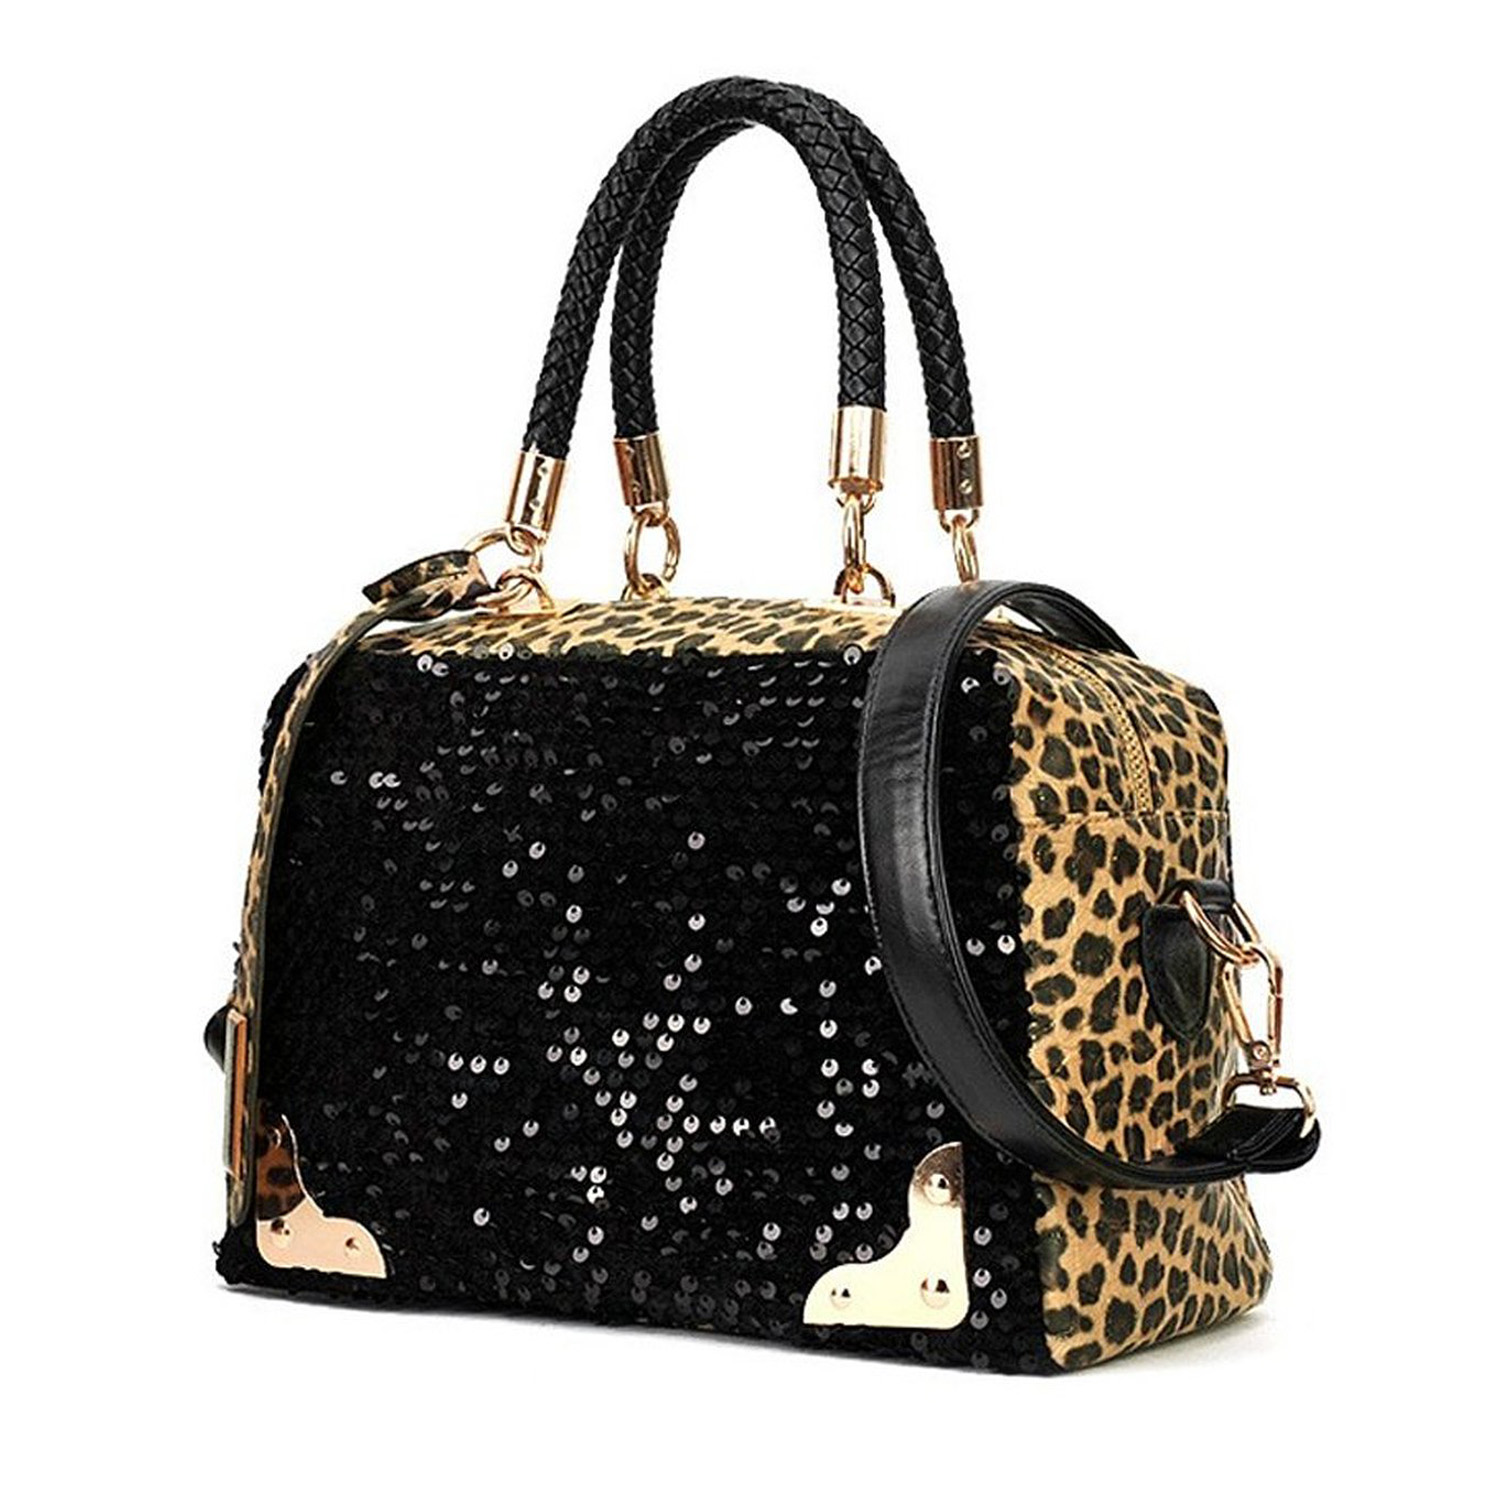 Compare Prices on Leopard Print Handbag- Online Shopping/Buy Low ...